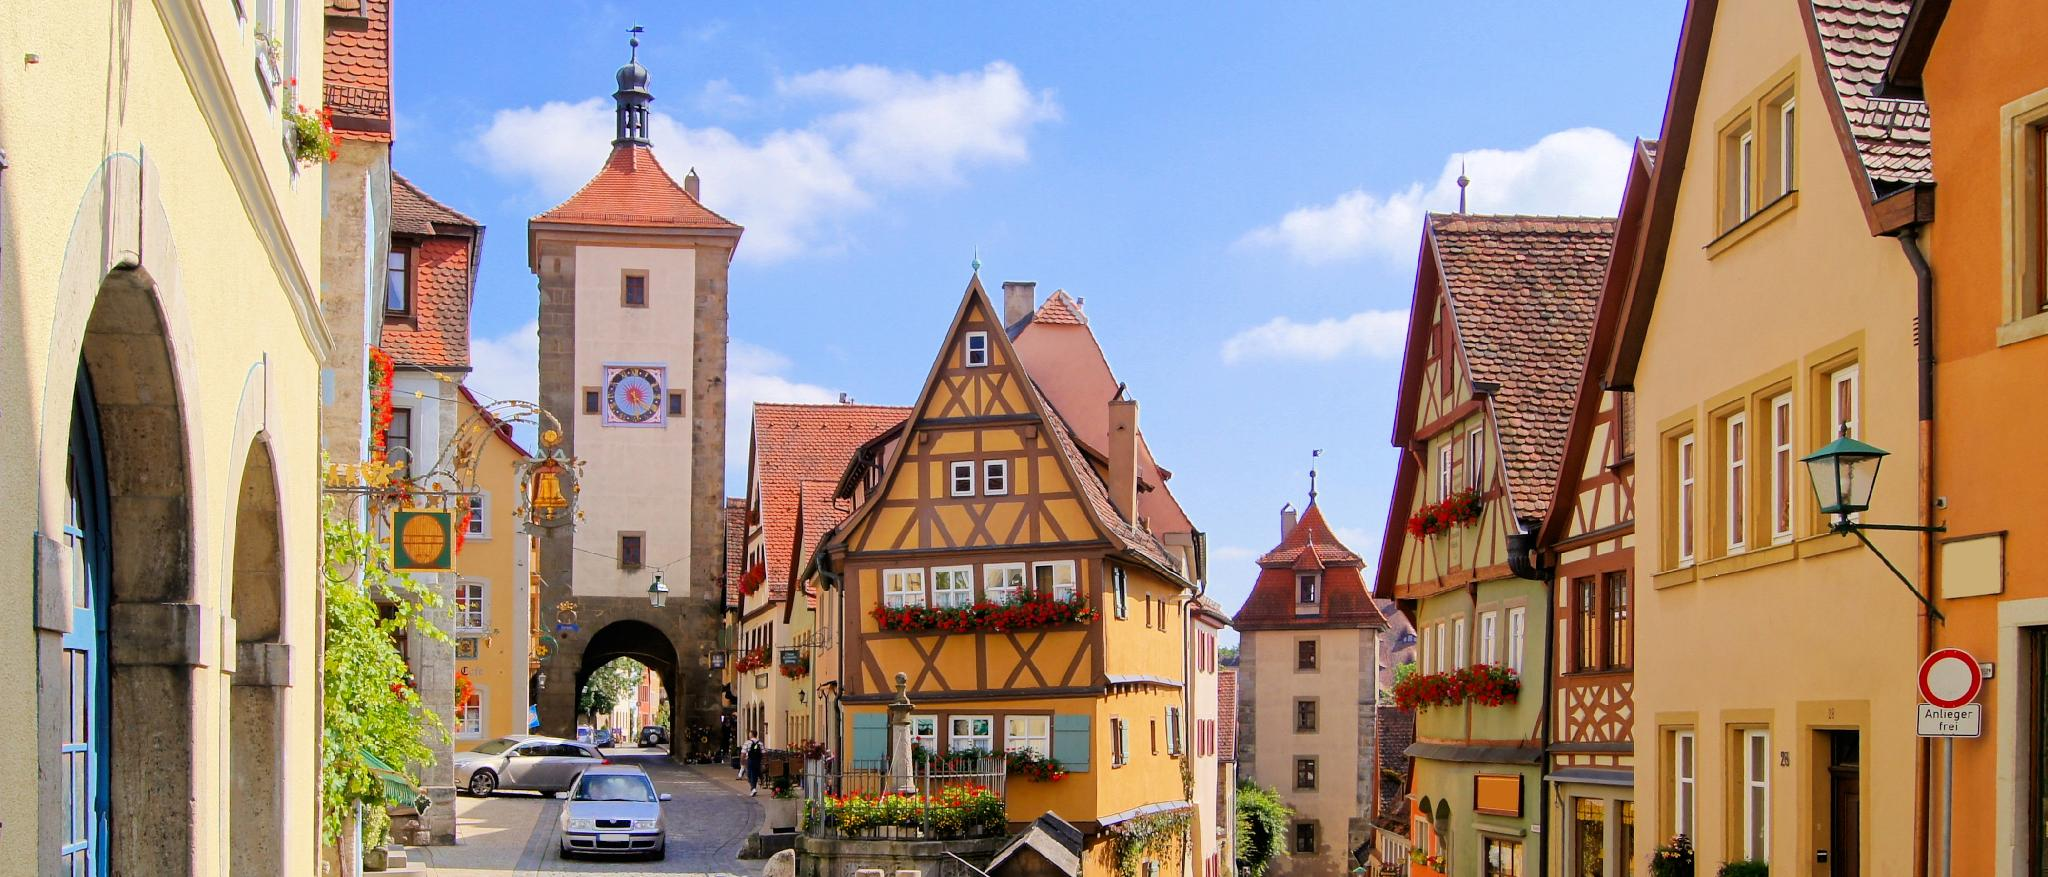 10 best rothenburg ob der tauber hotels hd photos. Black Bedroom Furniture Sets. Home Design Ideas